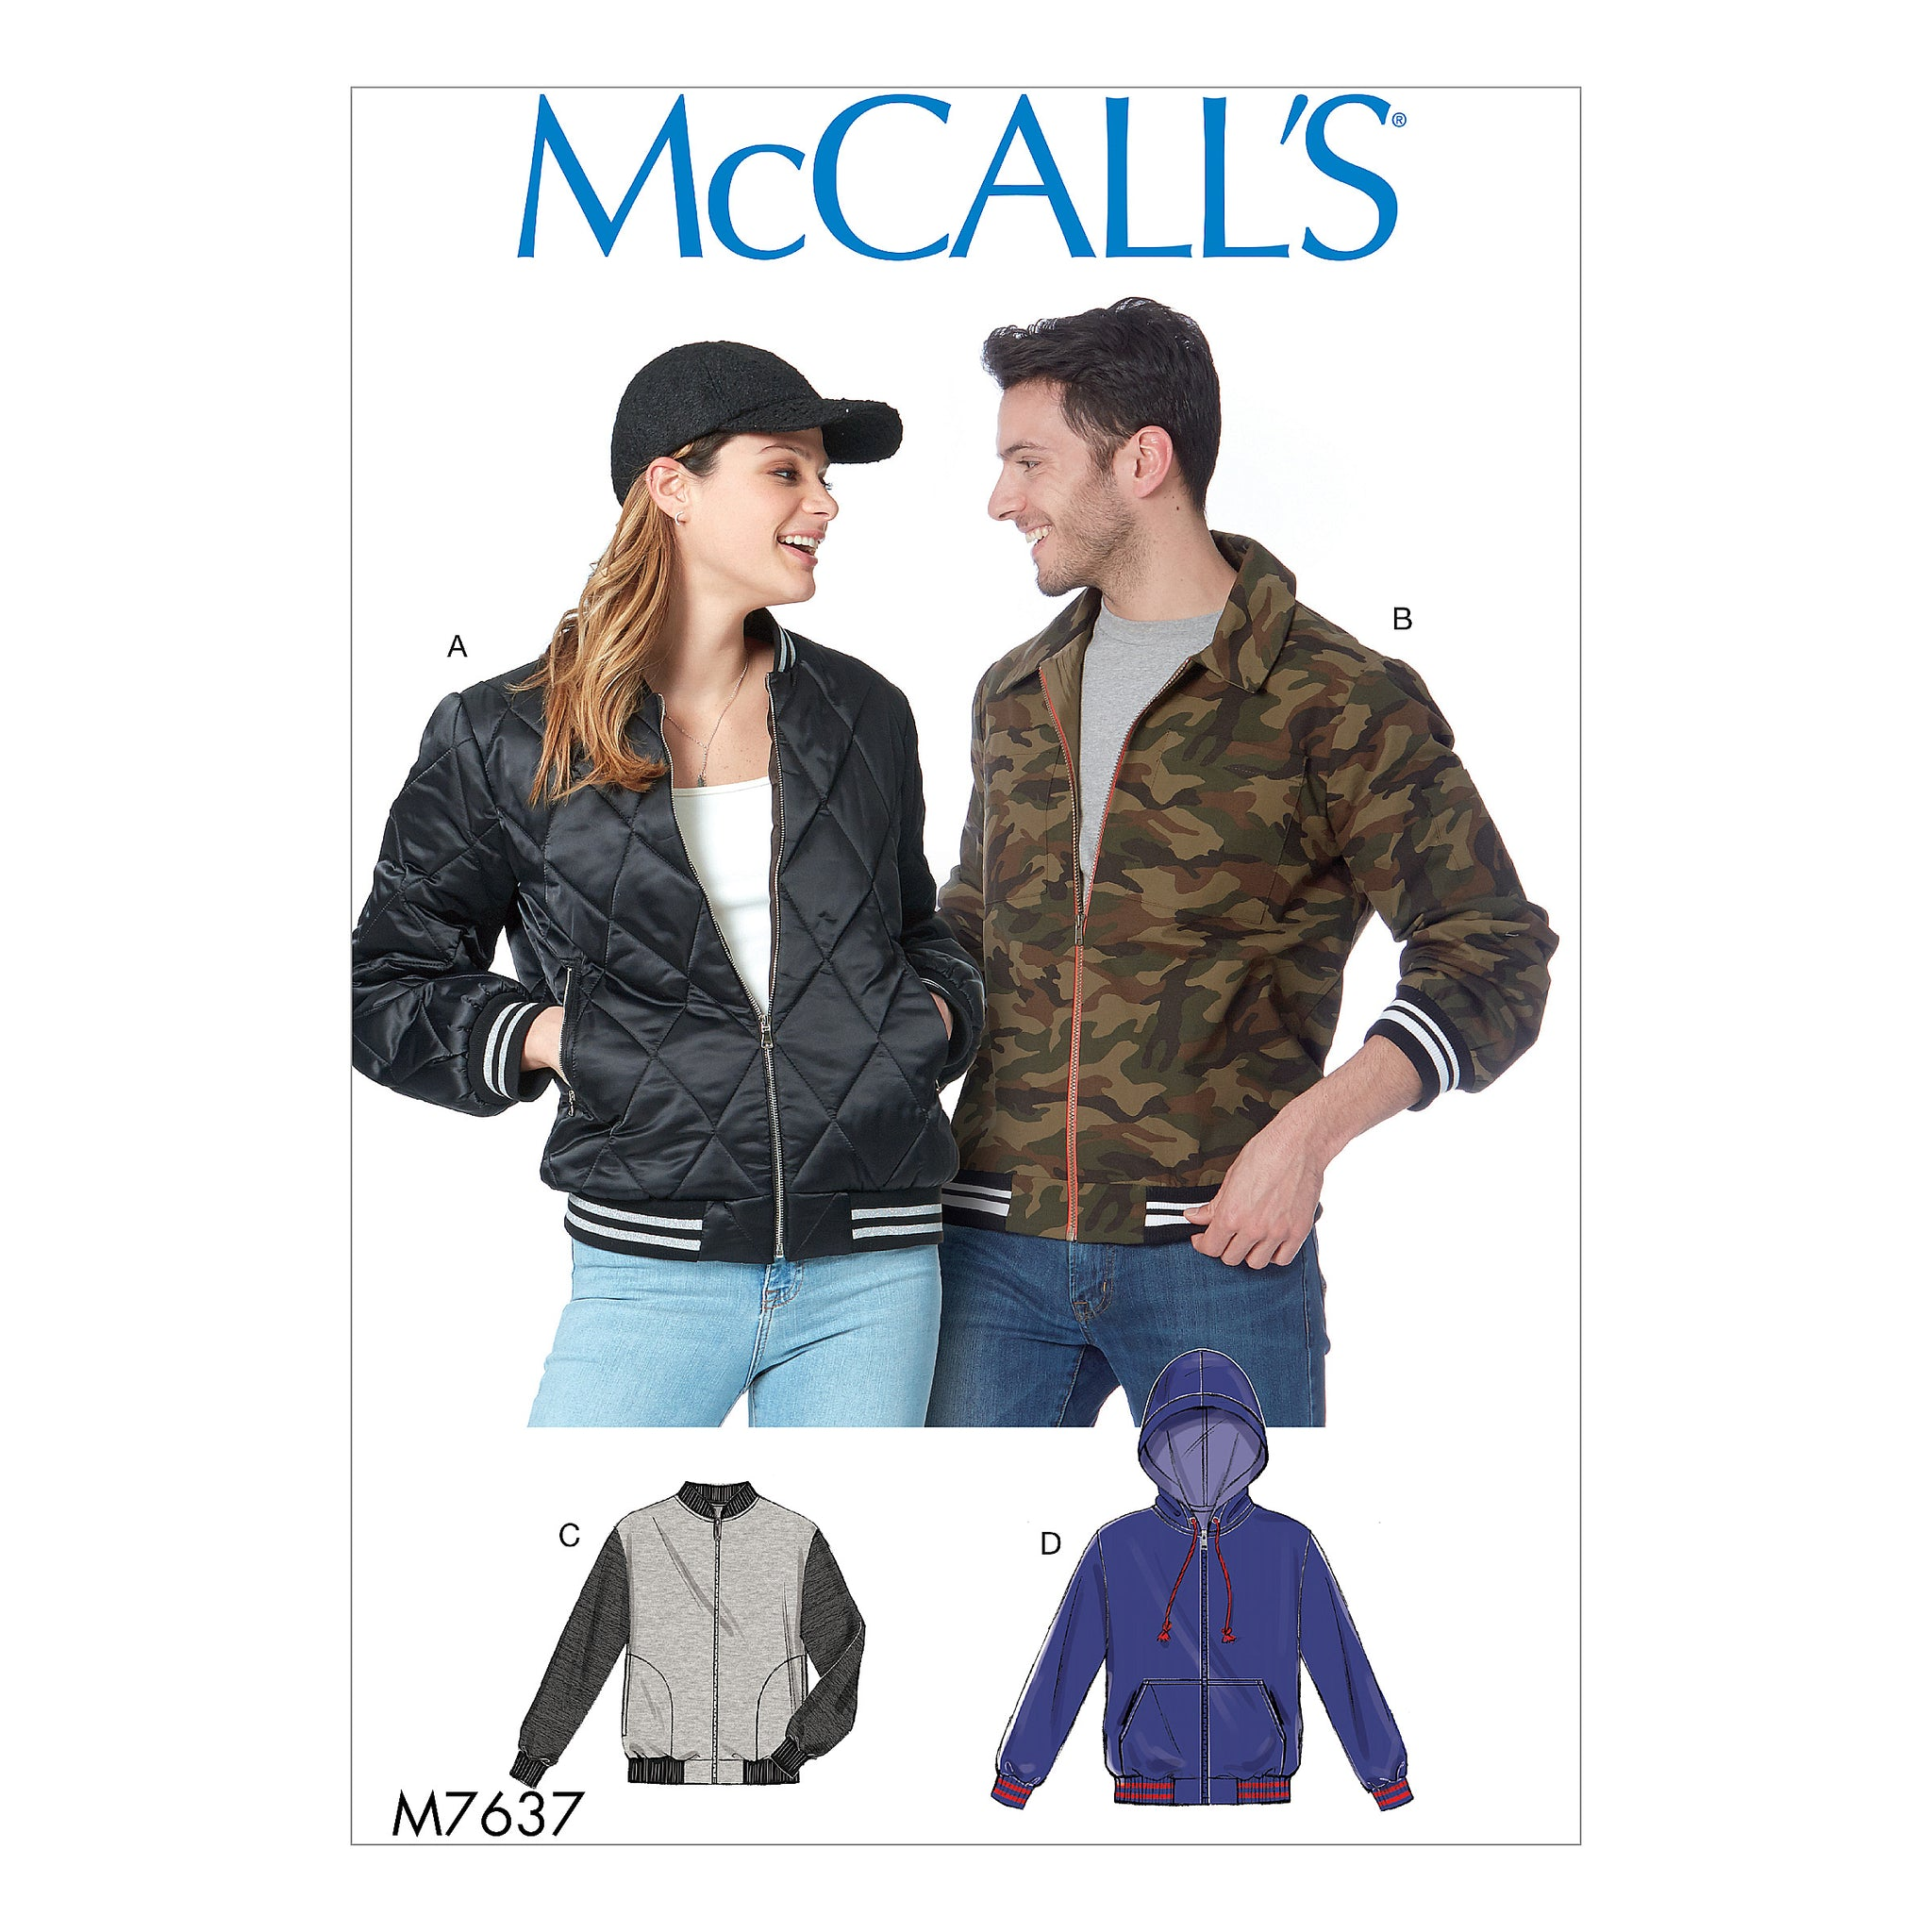 McCall's M7637XN0 Misses' and Men's bomber Jackets XLG-XXL-XXXL